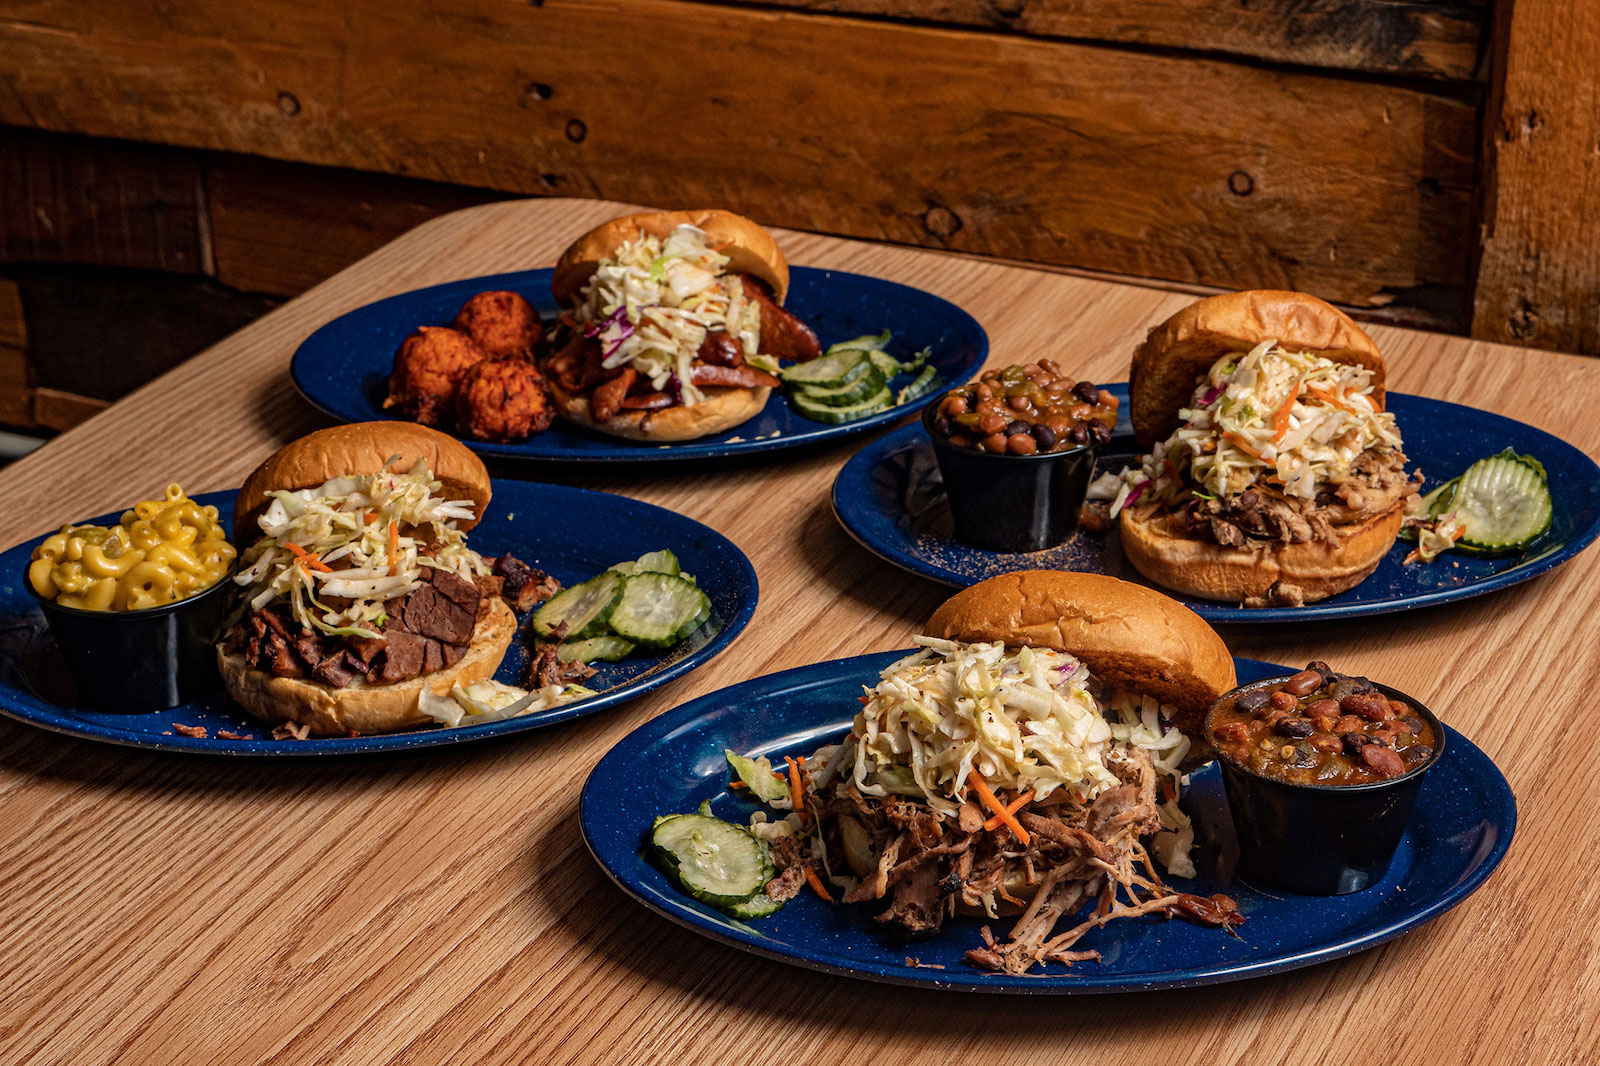 Image of BBQ at Tine Star Smokehouse in Evergreen, Colorado